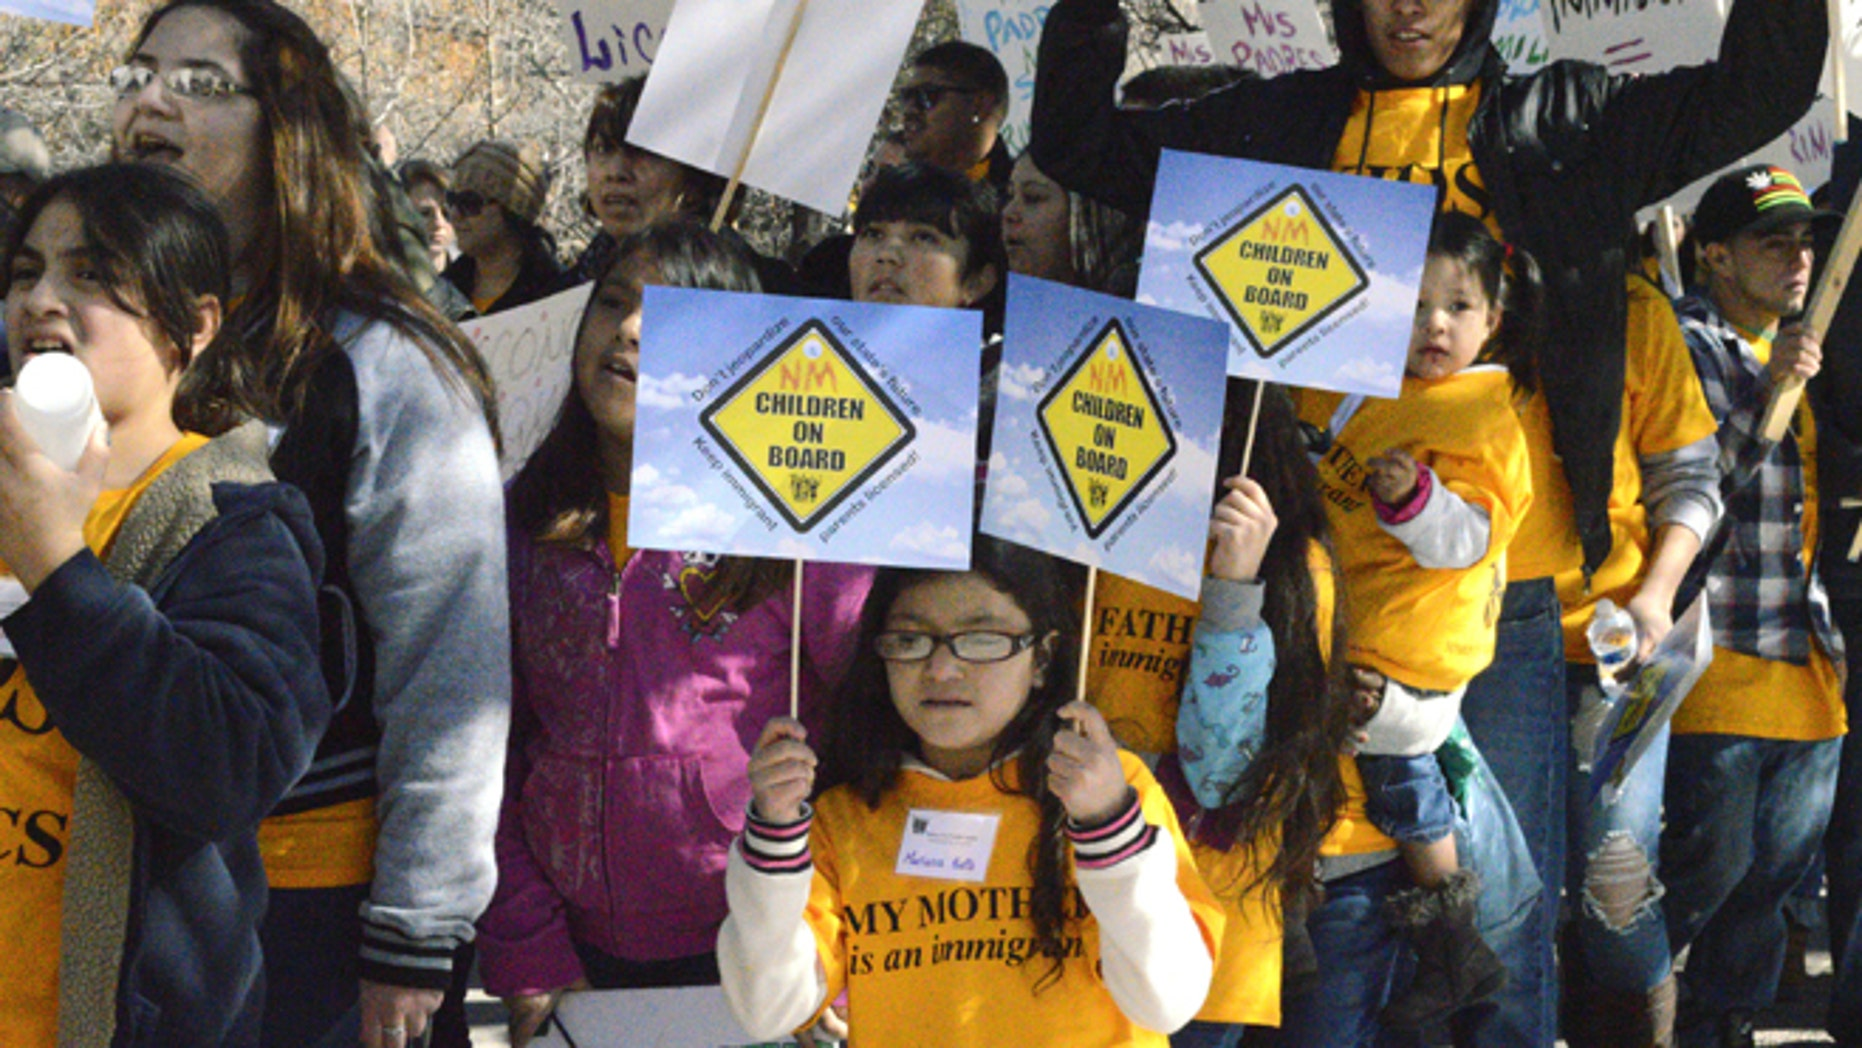 Thousands of immigrant advocates rally at the State Capitol to protest a proposal aimed at repealing a New Mexico law that allows immigrants in the country illegally to obtain driver's licenses Monday, Feb. 2, 2015, in Santa Fe, N.M. (AP Photo/Russell Contreras)